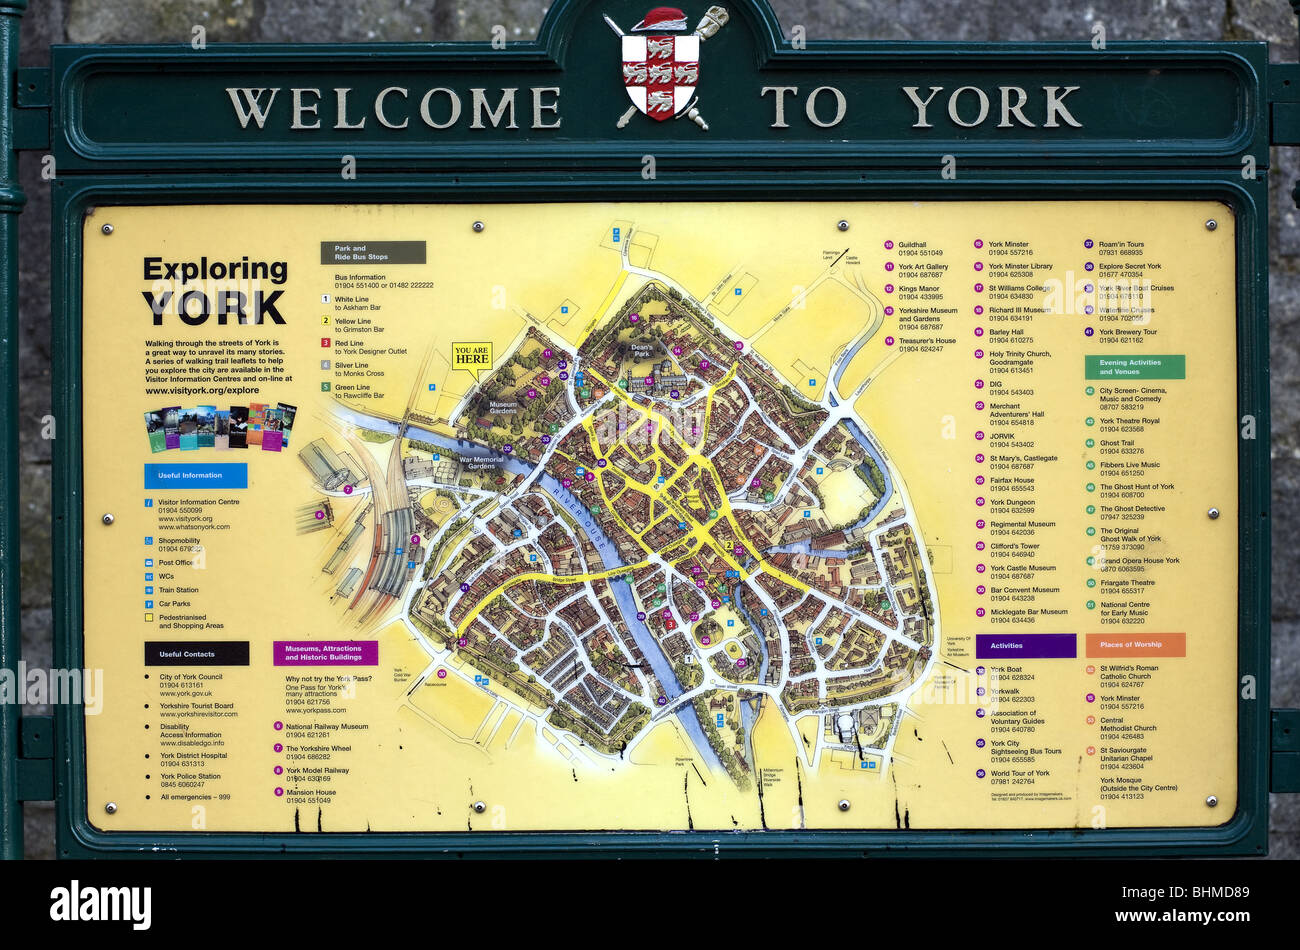 York Street Map Welcome to York street map Stock Photo: 28108985   Alamy